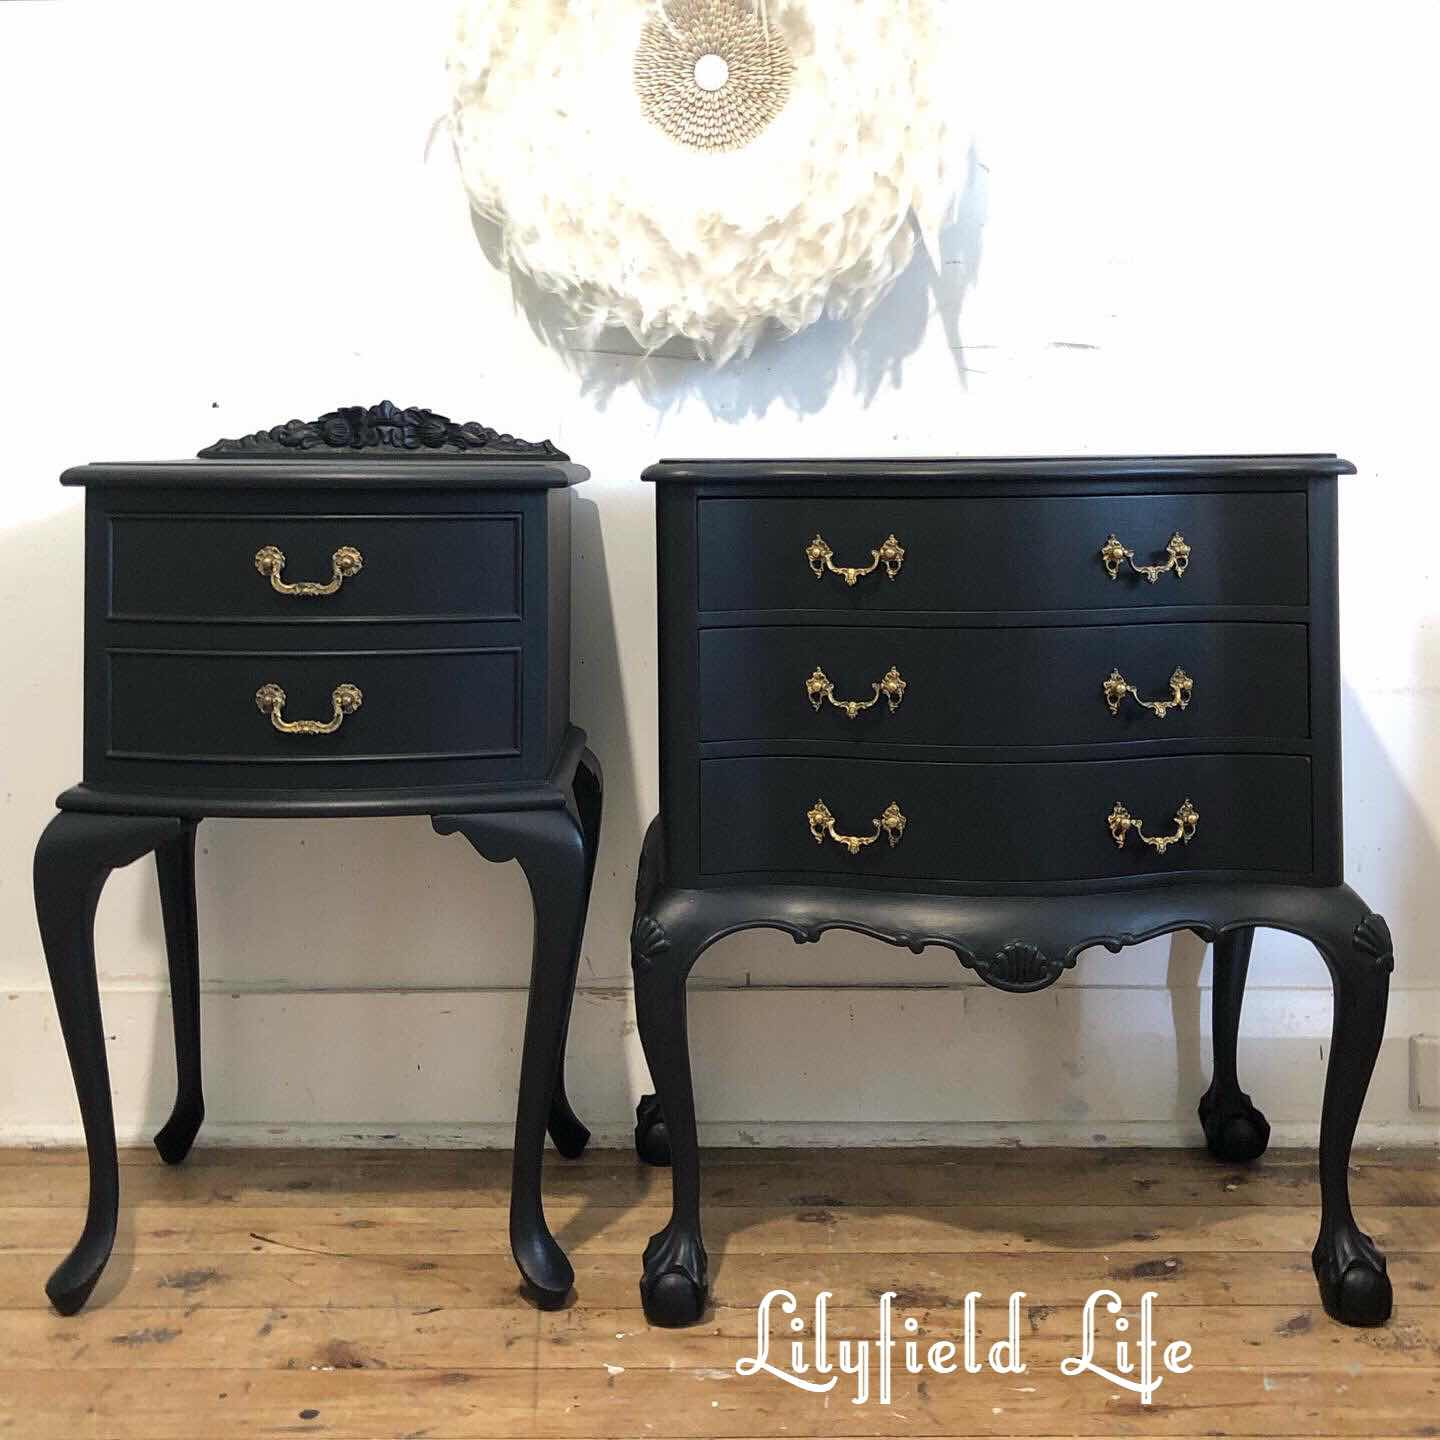 lilyfield life black American bow bedside tables drawers chalk paint